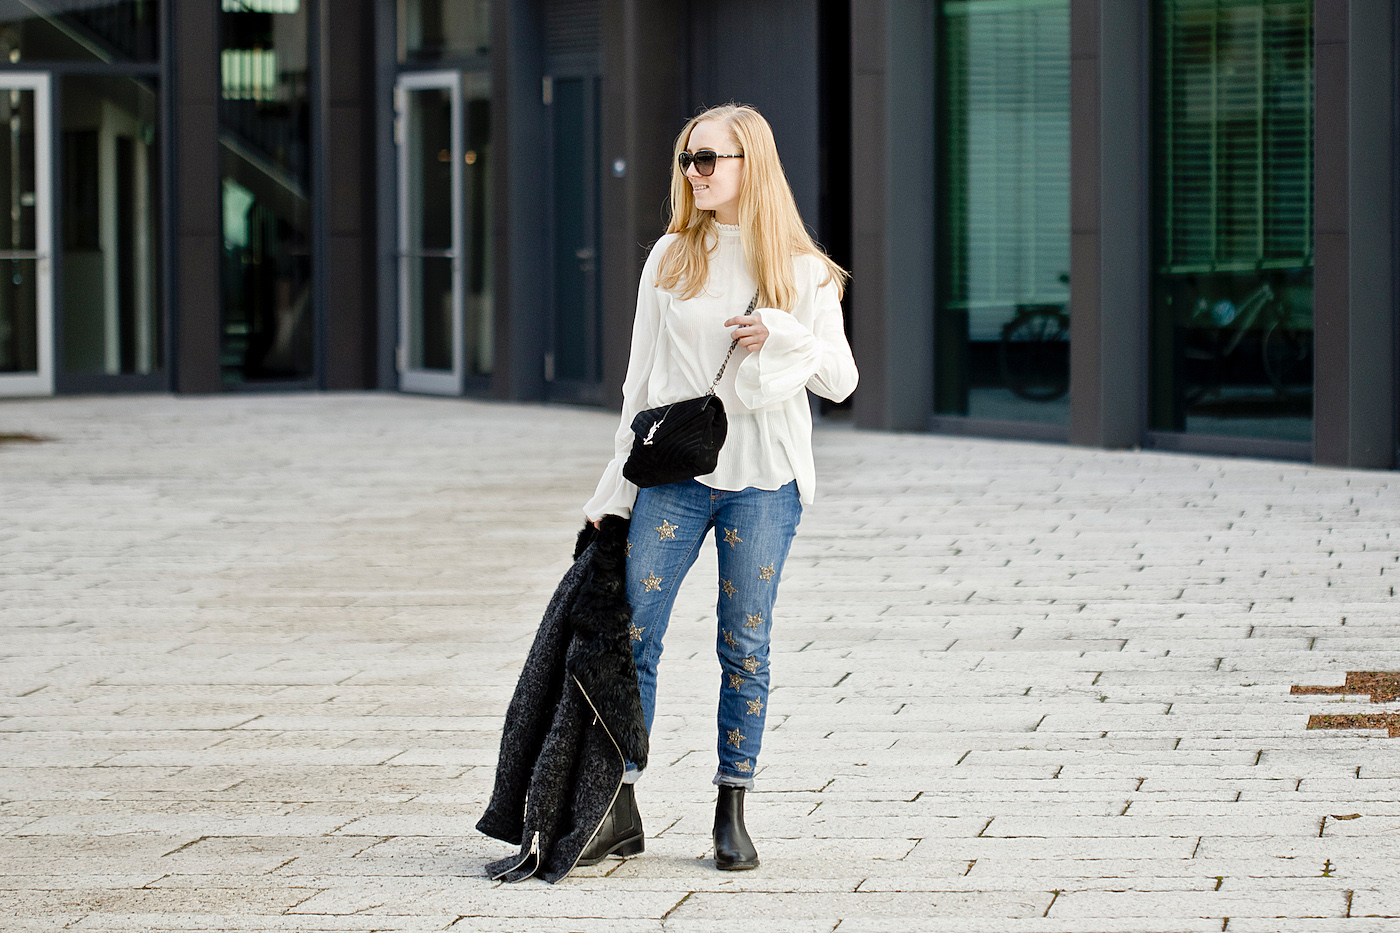 jeans mit sterne _ jeans with stars _ emu boots _ H&M blouse with bell sleeves _ yves saint laurent tasche